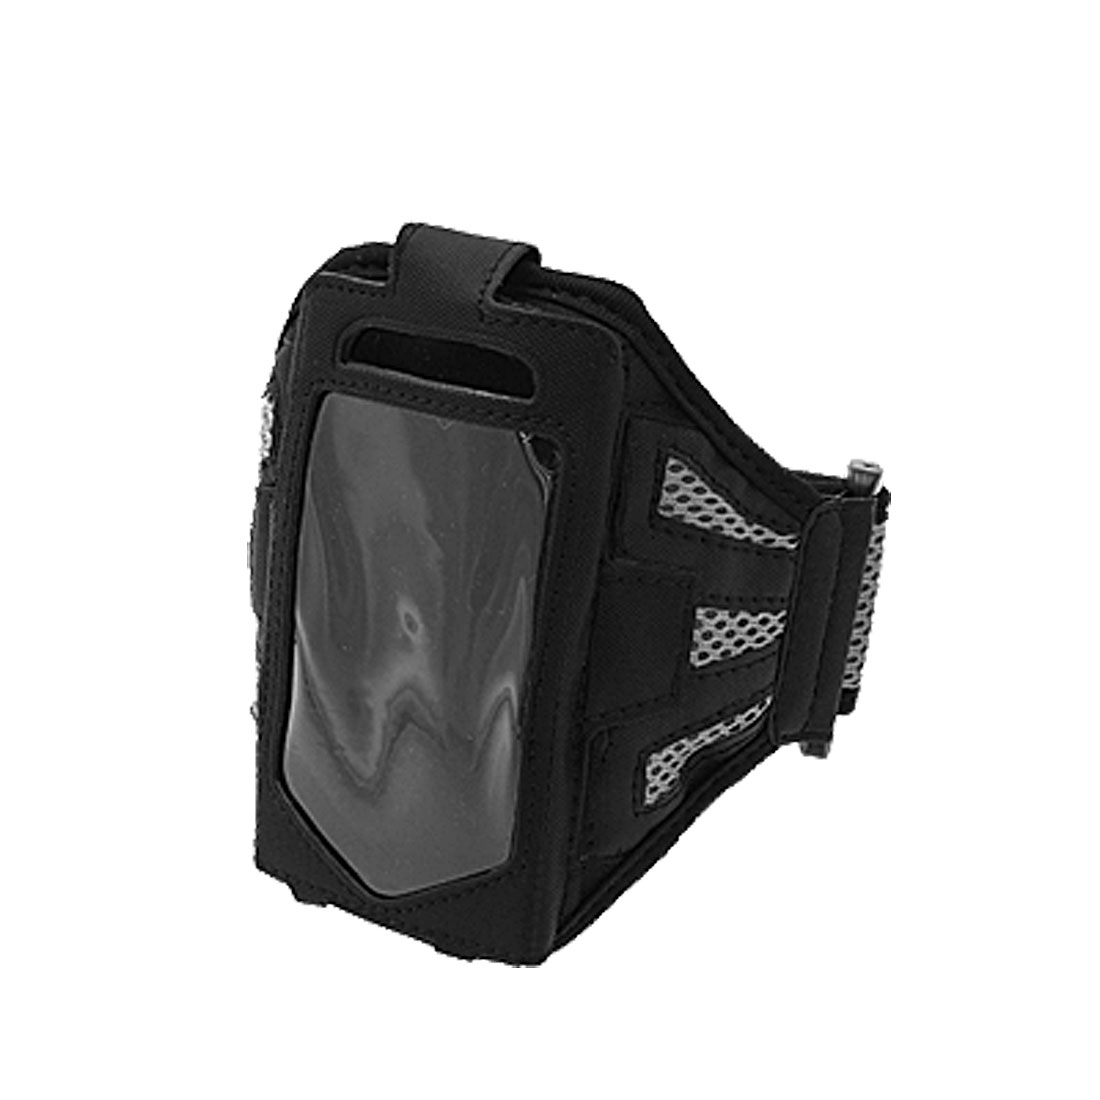 Lifestyle Sports Armband Case Holder for Apple iPhone 3G Black